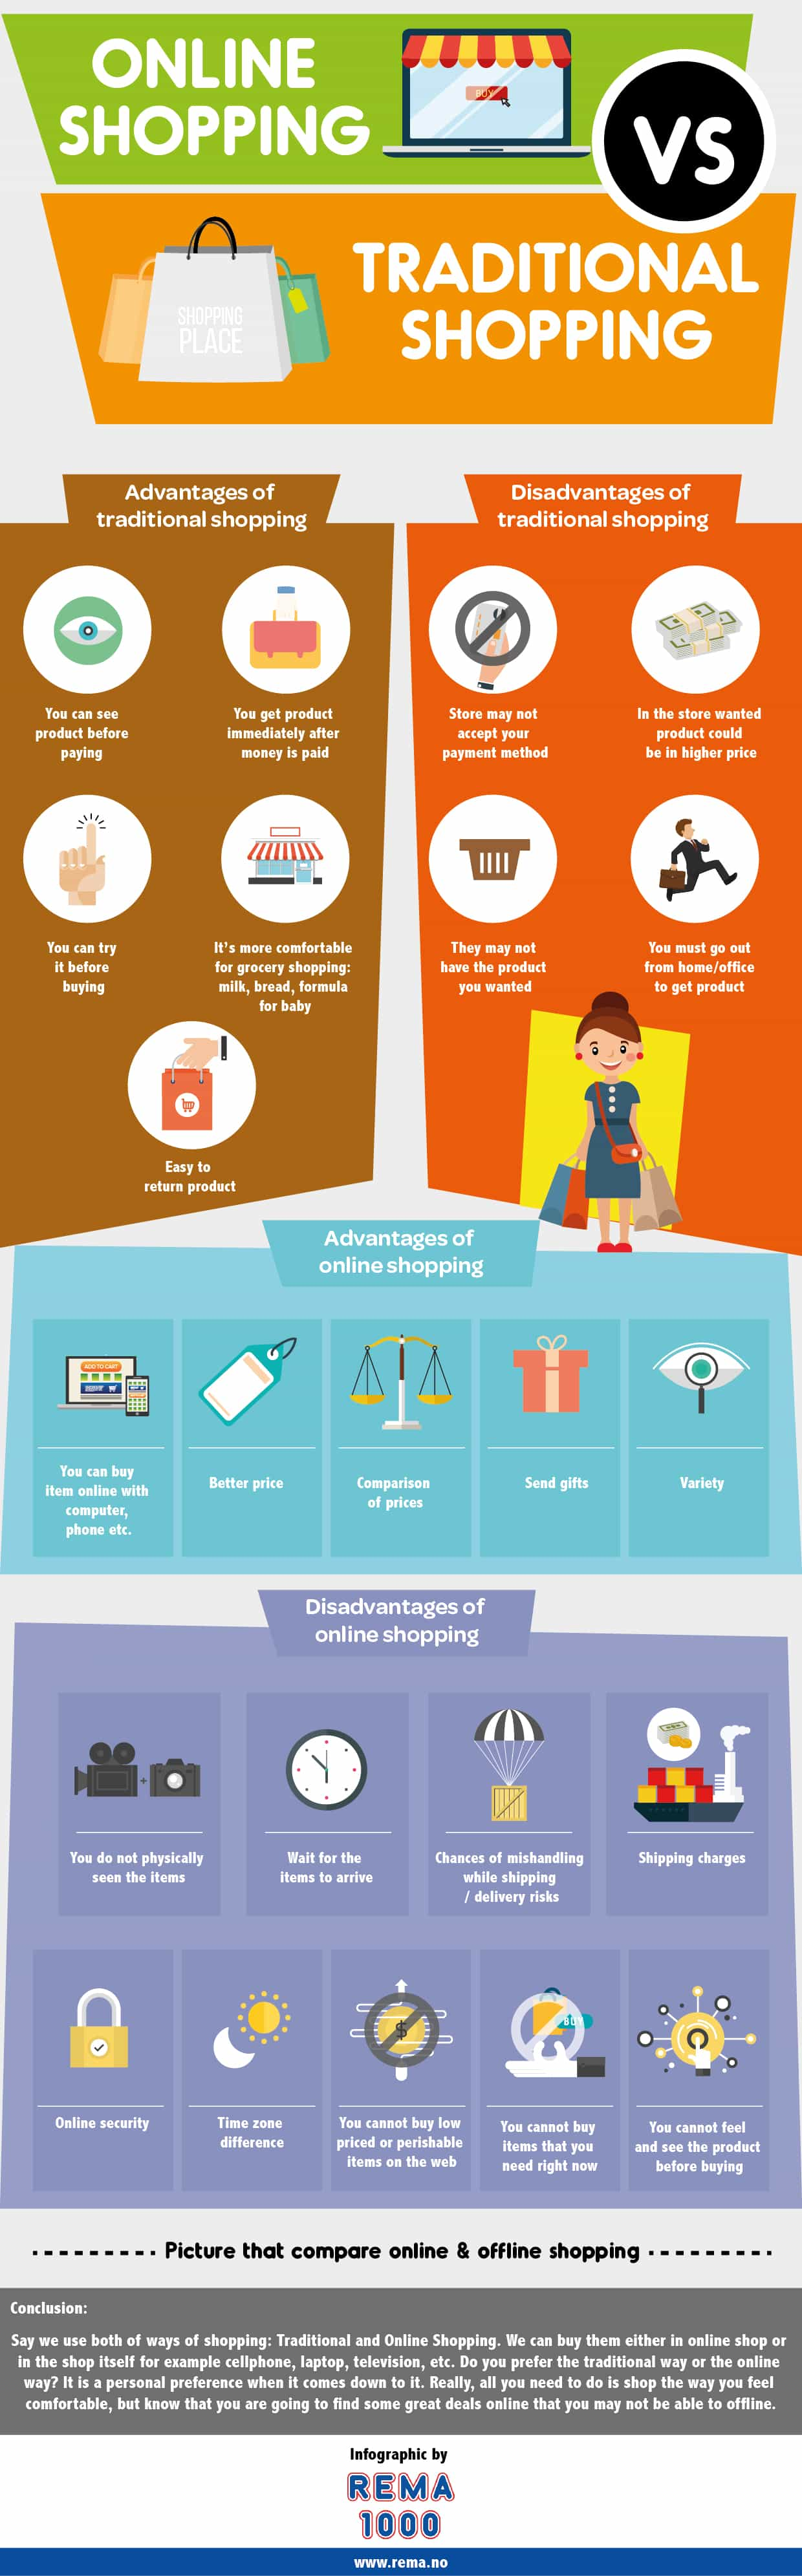 traditional vs online shopping proposal Online shopping vs traditional shopping essay online shopping - 380 words people's lives change with online shopping is it unsafe or difficult to purchase.